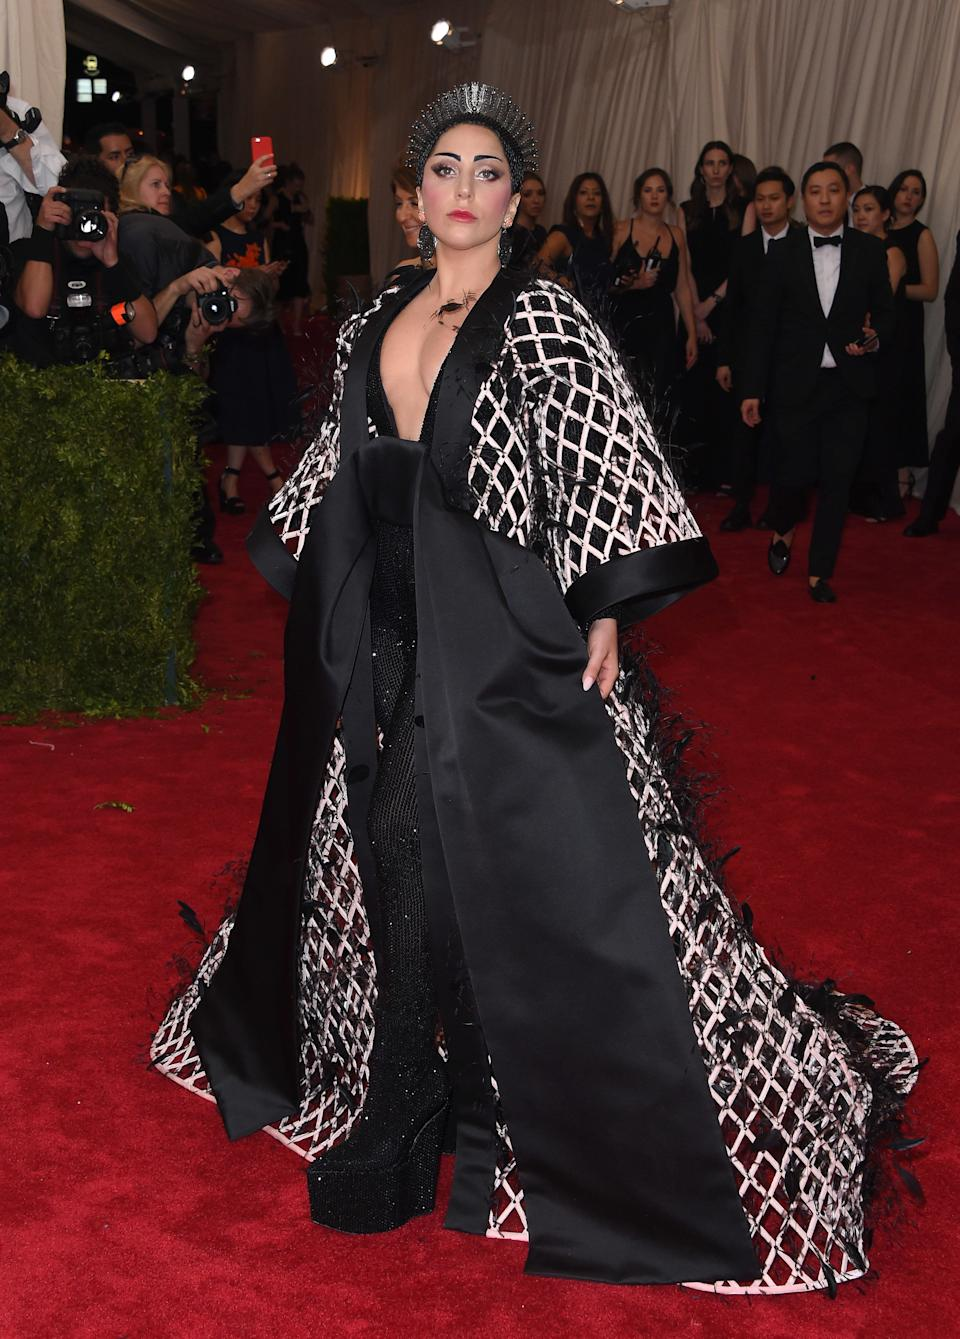 """Gaga walks the red carpet at the 2015 Met Gala celebrating the opening of the """"China: Through The Looking Glass"""" exhibit at the Metropolitan Museum's Costume Institute on May 4, 2015."""